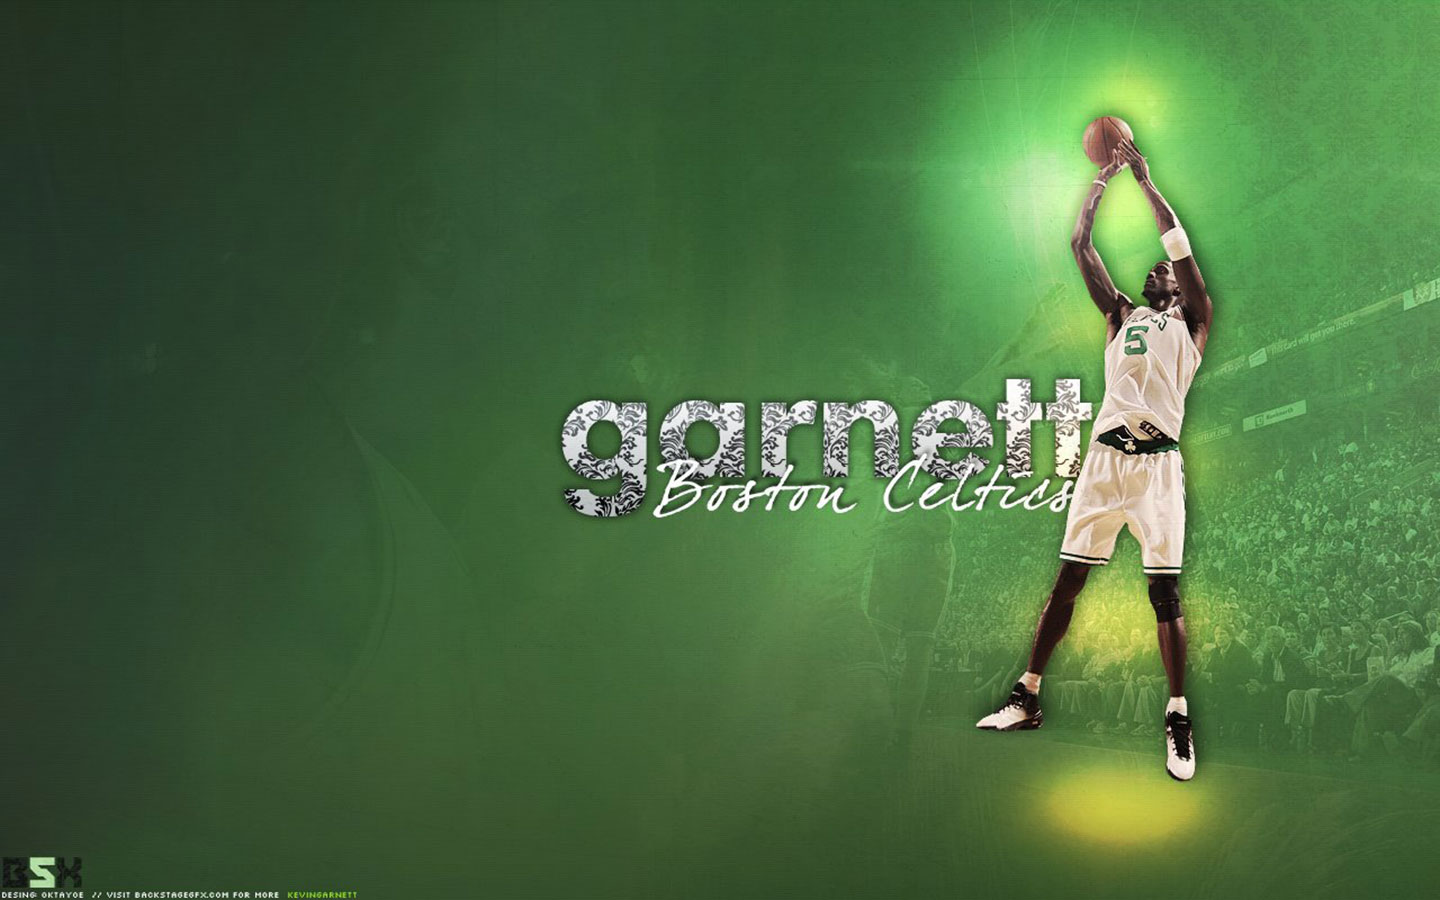 Kevin Garnett 1440900 Celtics Wallpaper Basketball 1440x900